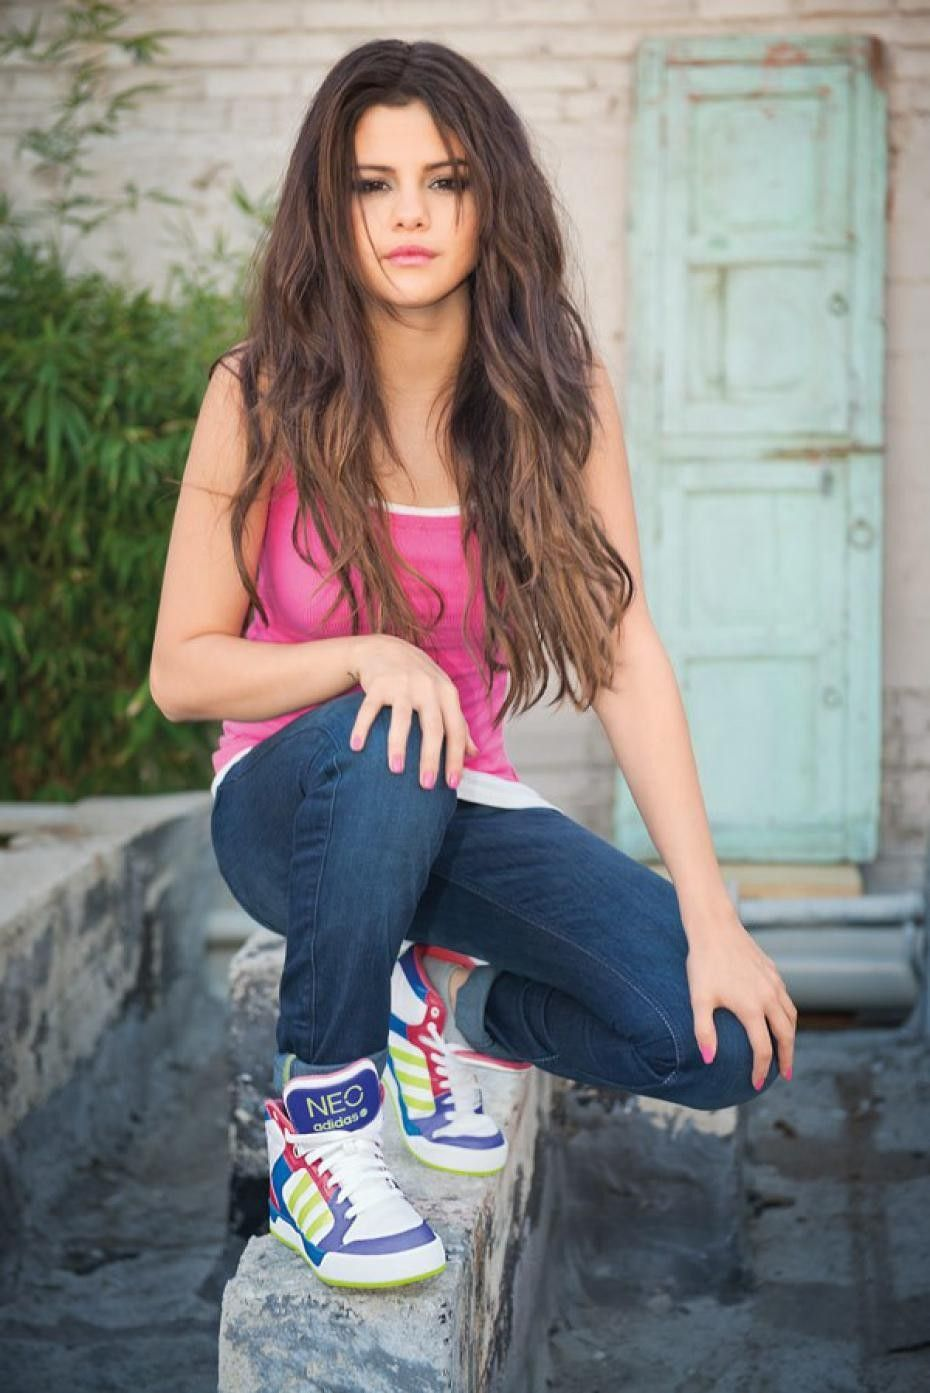 download Latest Images of Selena Gomez Download New 930x1393